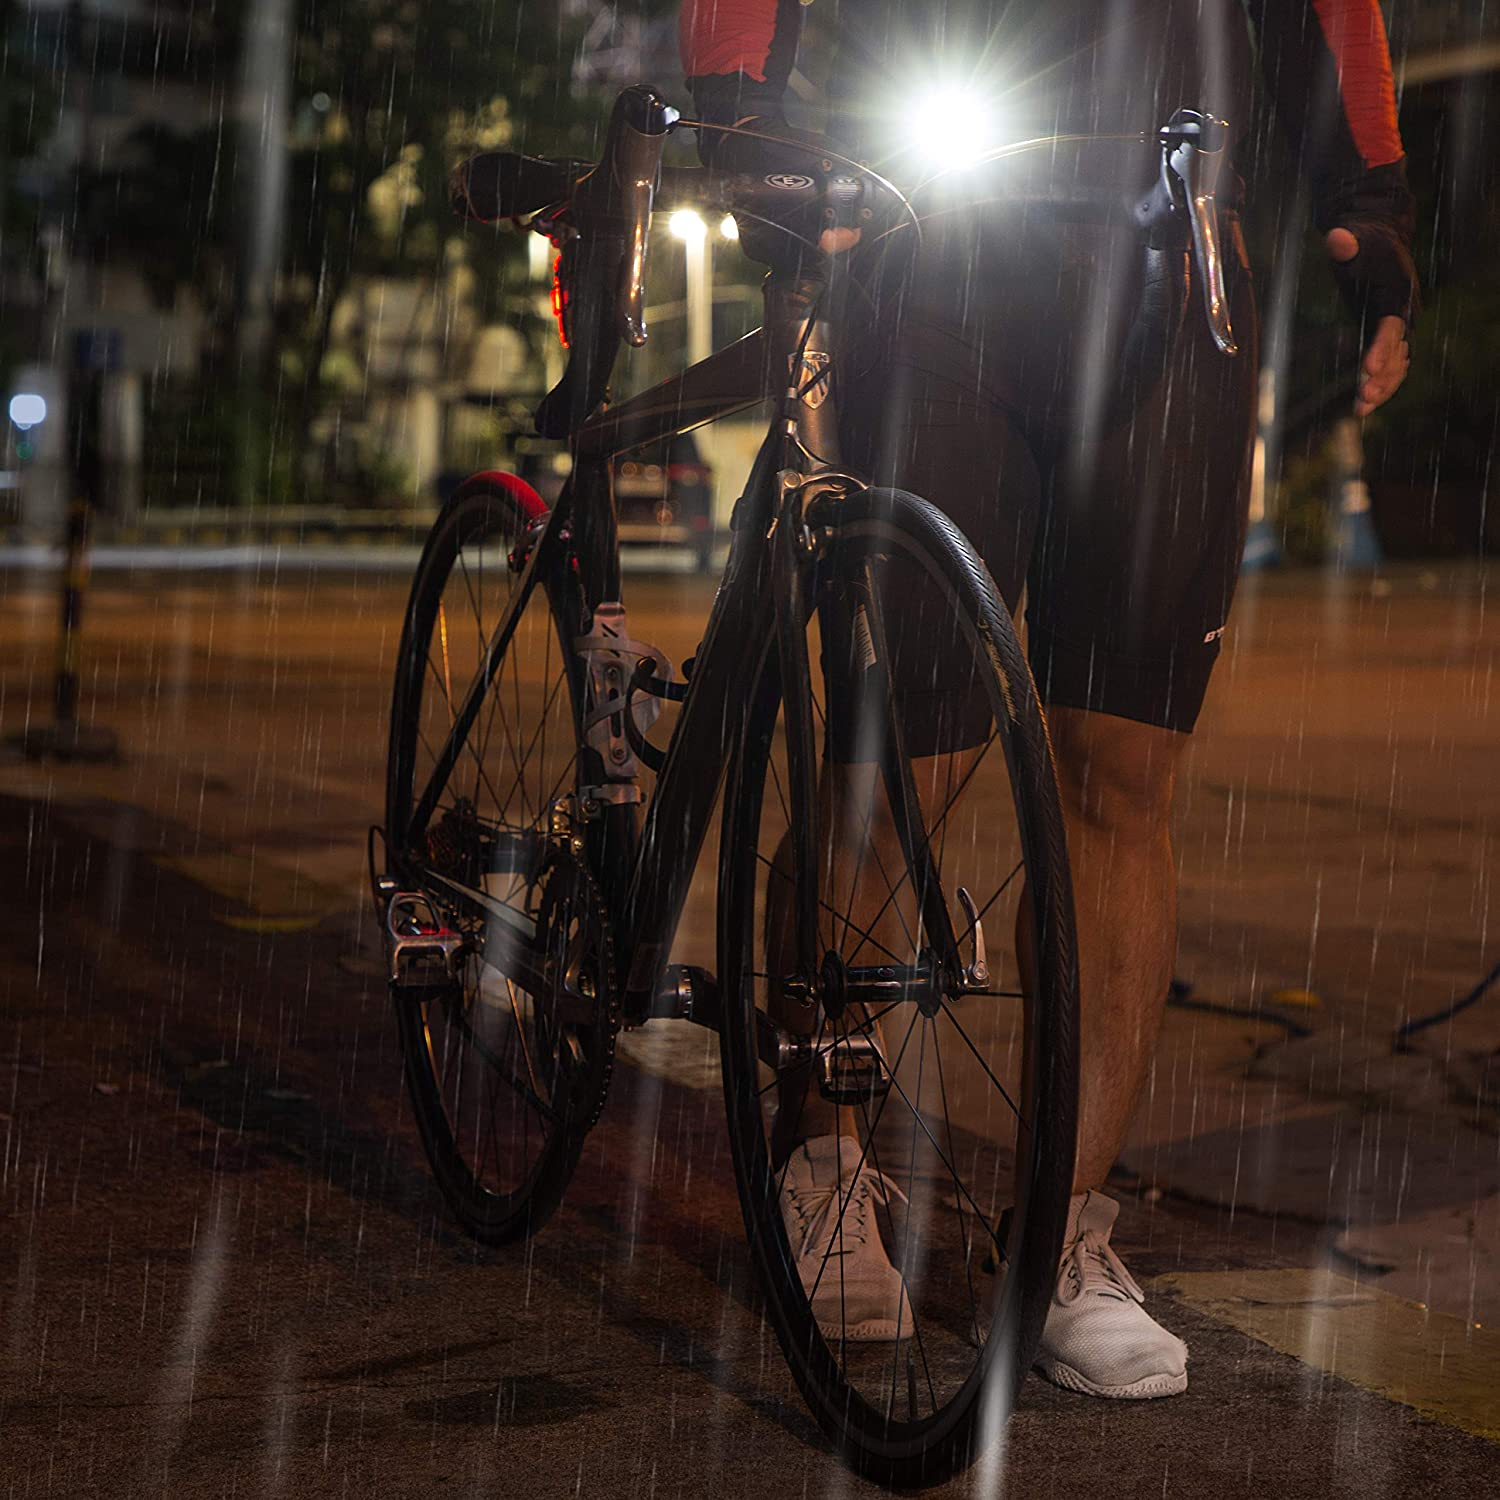 Apace Vision GlareFX Pro800 Bike Light Set USB Rechargeable Powerful Bicycle Headlight /& LED Tail Light Combo 800 Lumens Super Bright IPX6 Waterproof MTB Road Commuter Front and Back Cycle Lights